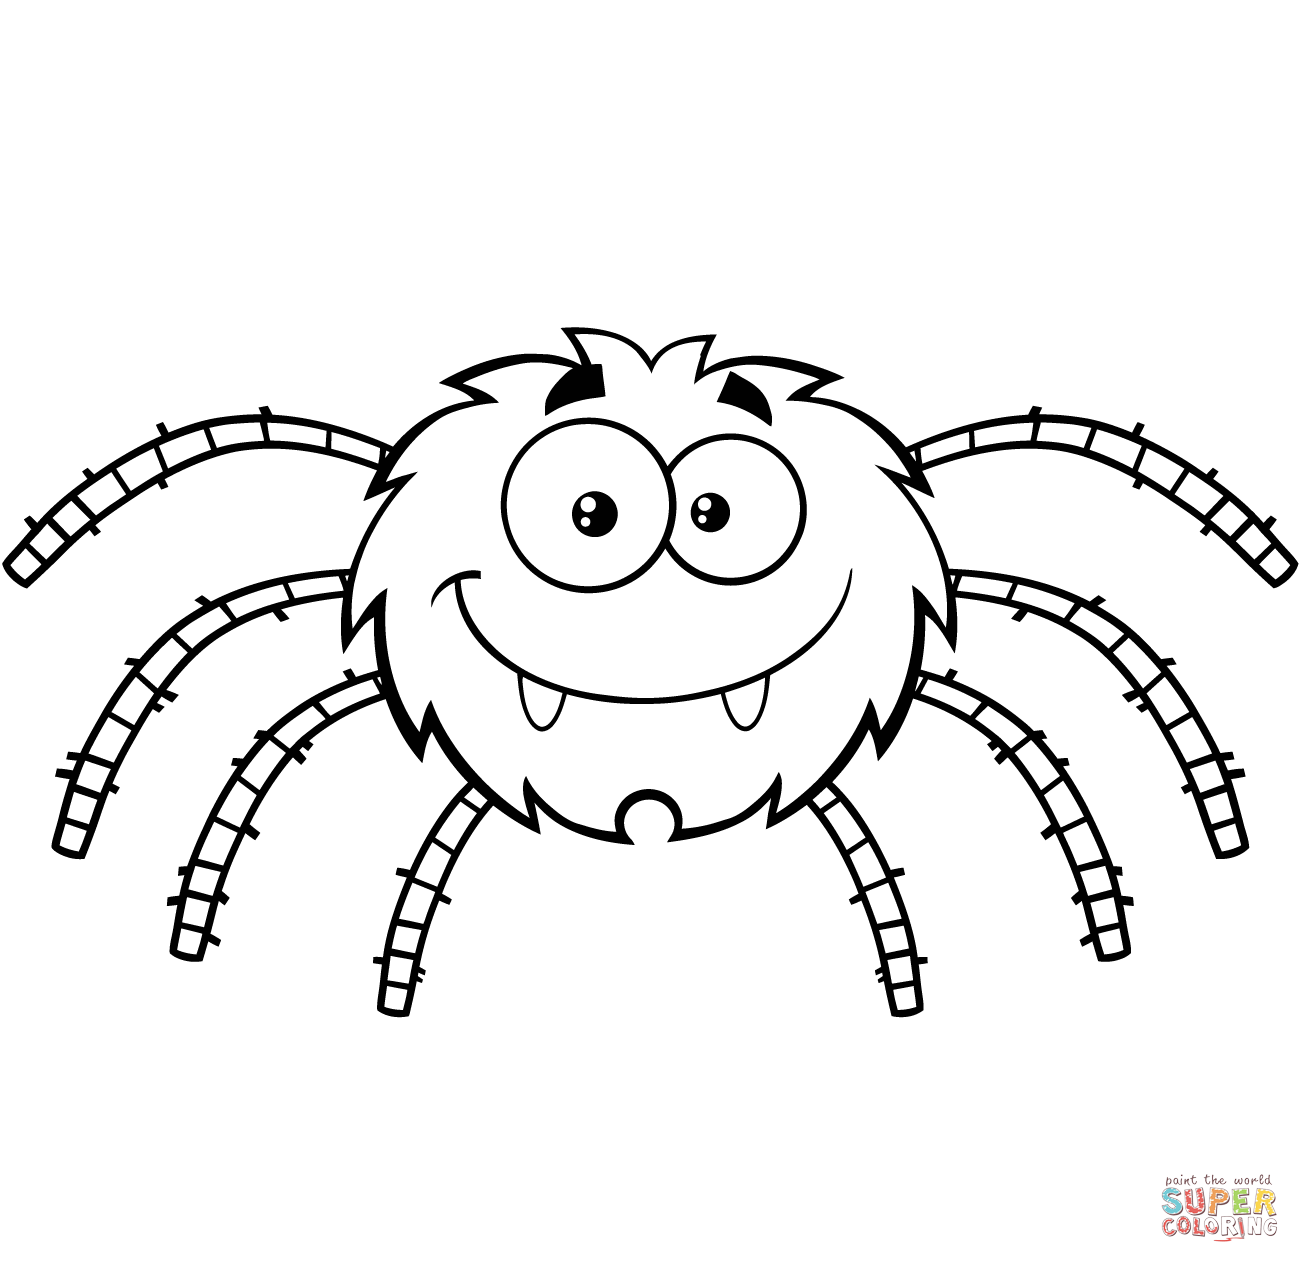 printable black spiders halloween pin the spider on the web game printables free spiders black printable